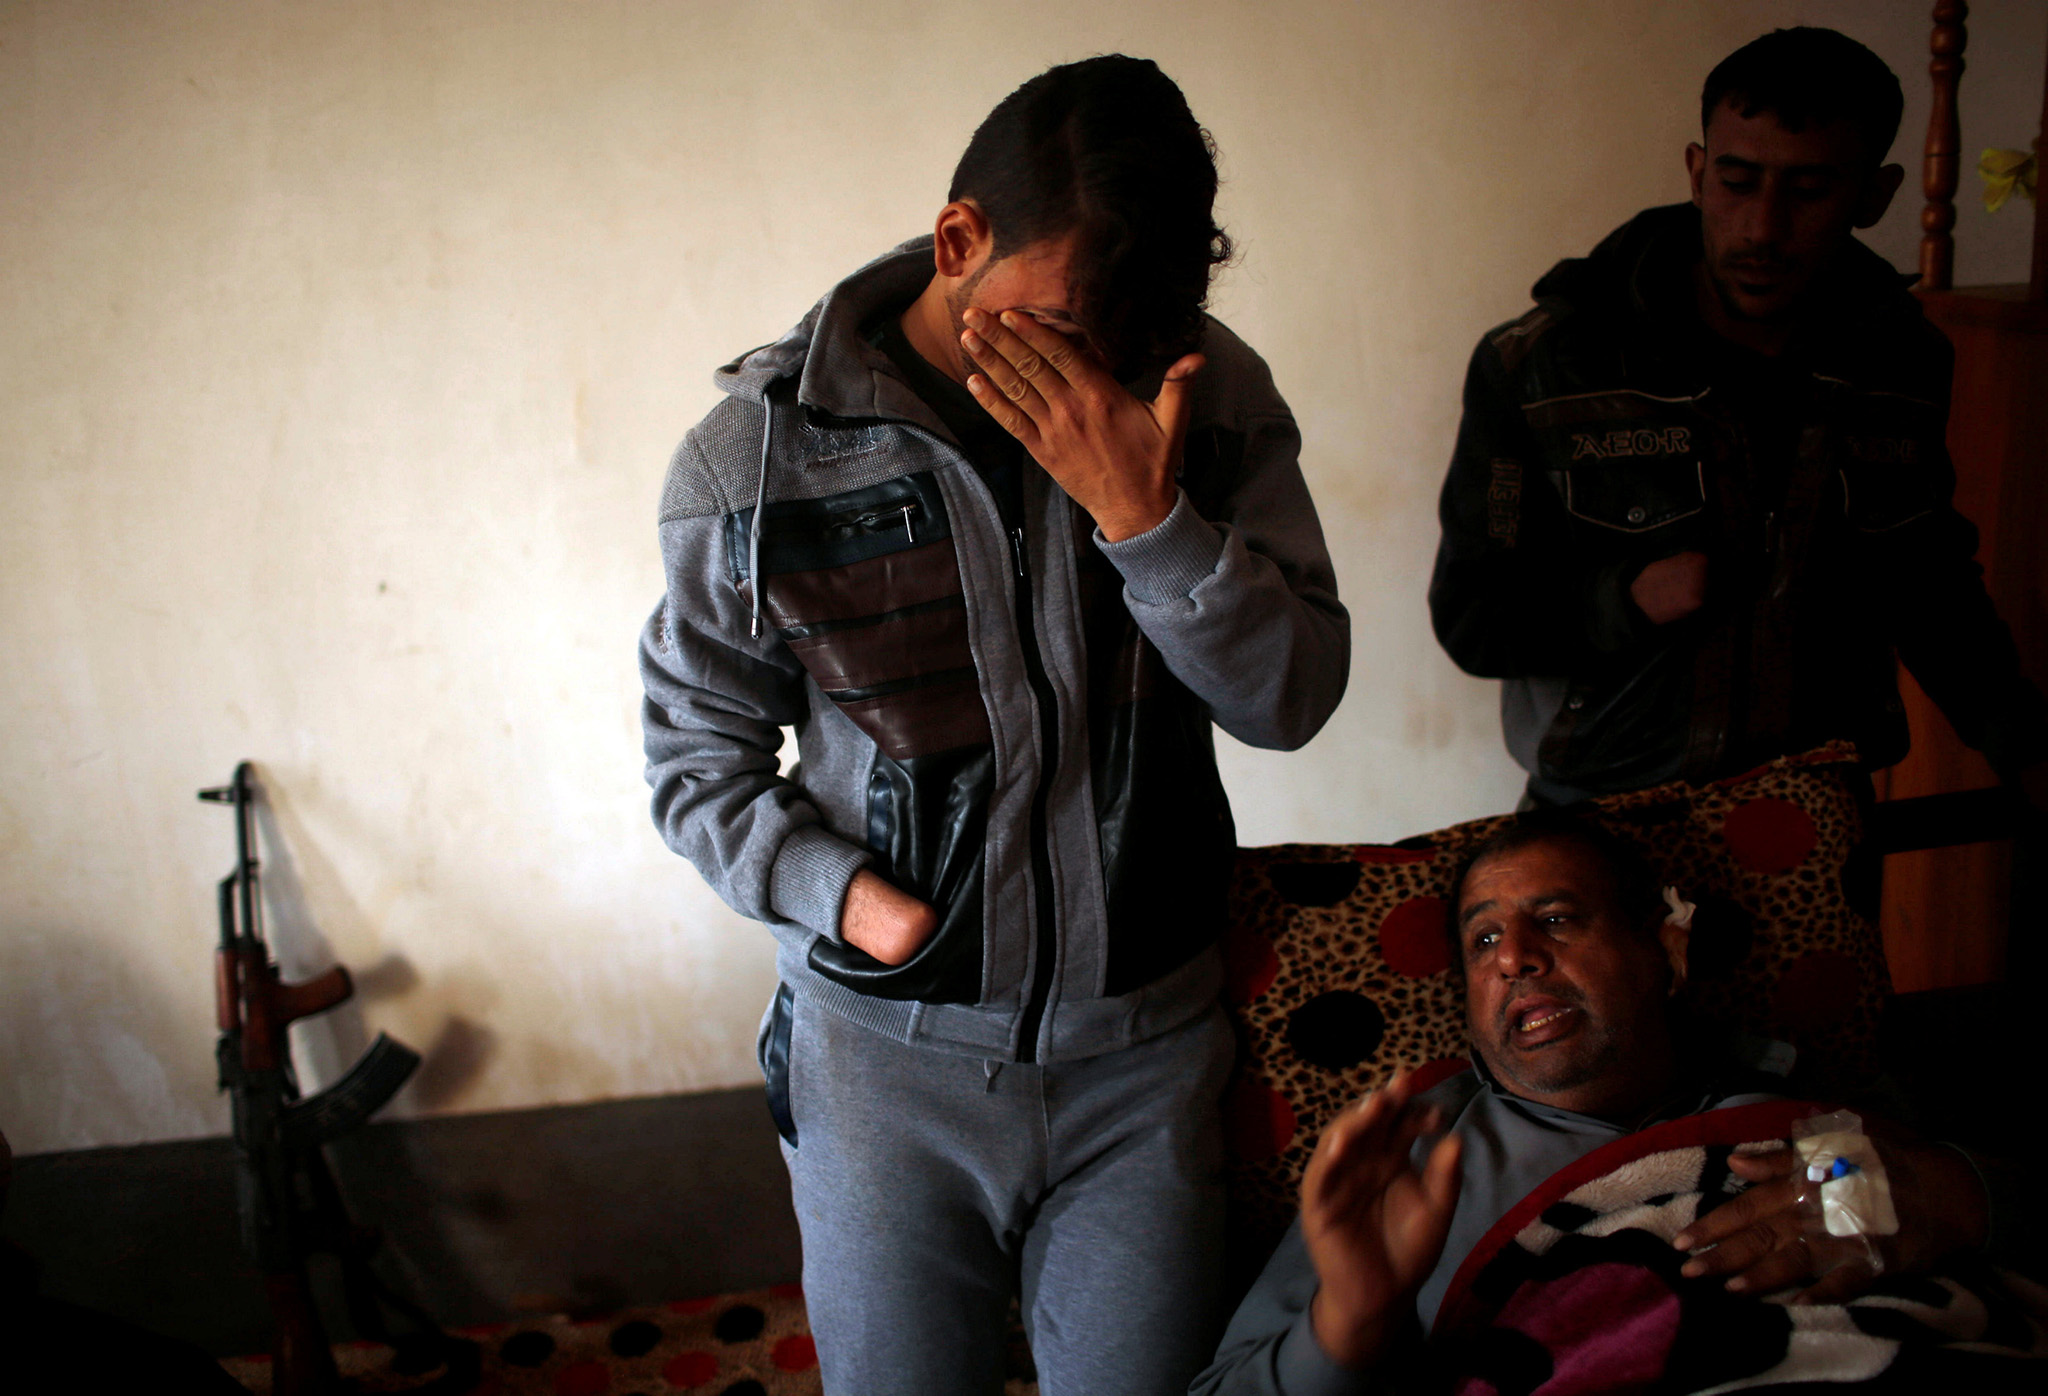 Azad Hassan (L), whose hand was chopped off by Islamic State militants, cries as he stands beside his wounded father in a house at Nimrud village, south of Mosul, Iraq, December 13, 2016. Picture taken December 13, 2016. REUTERS/Mohammed Salem